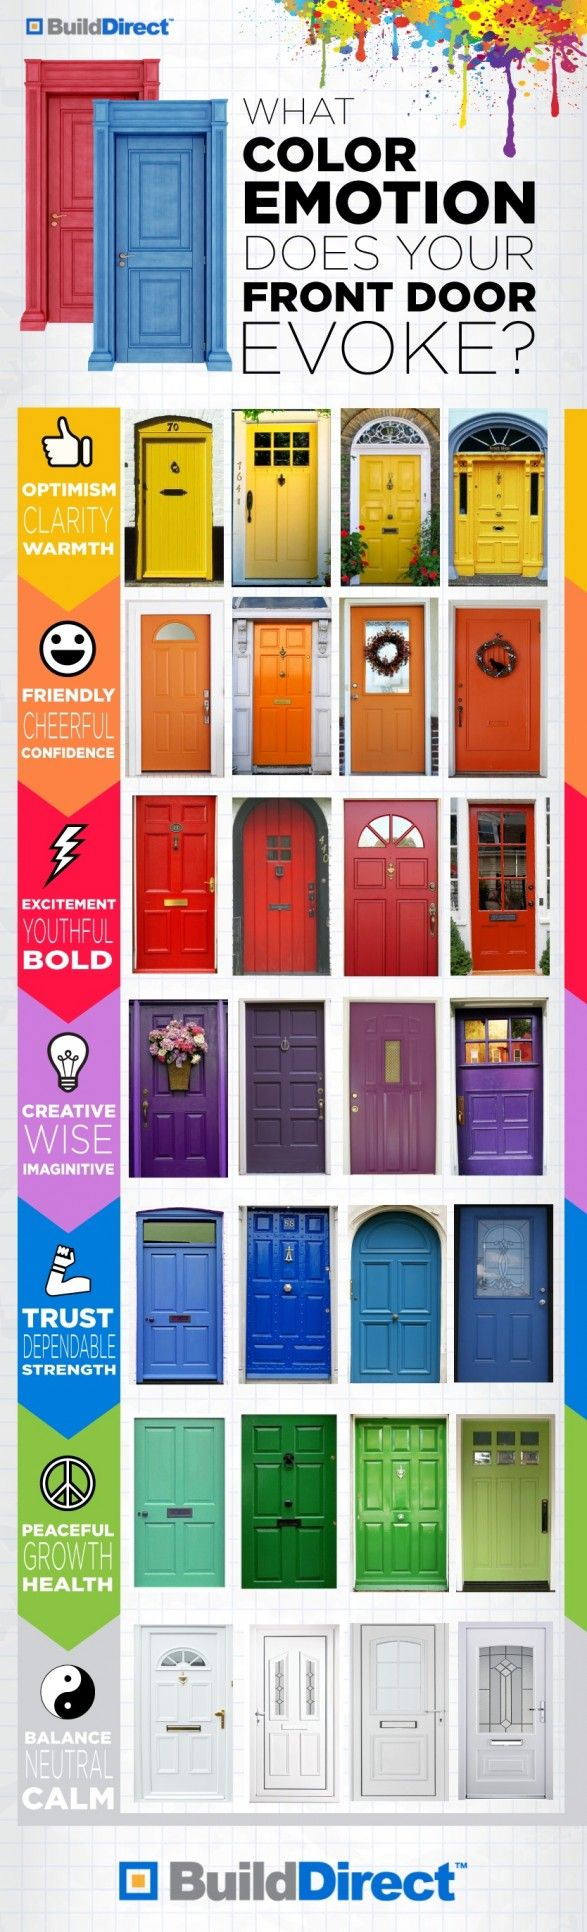 Color And Emotion Who Knew The Color Of Your Front Door Brings Emotion Front Door Makeover Doors Colors And Emotions